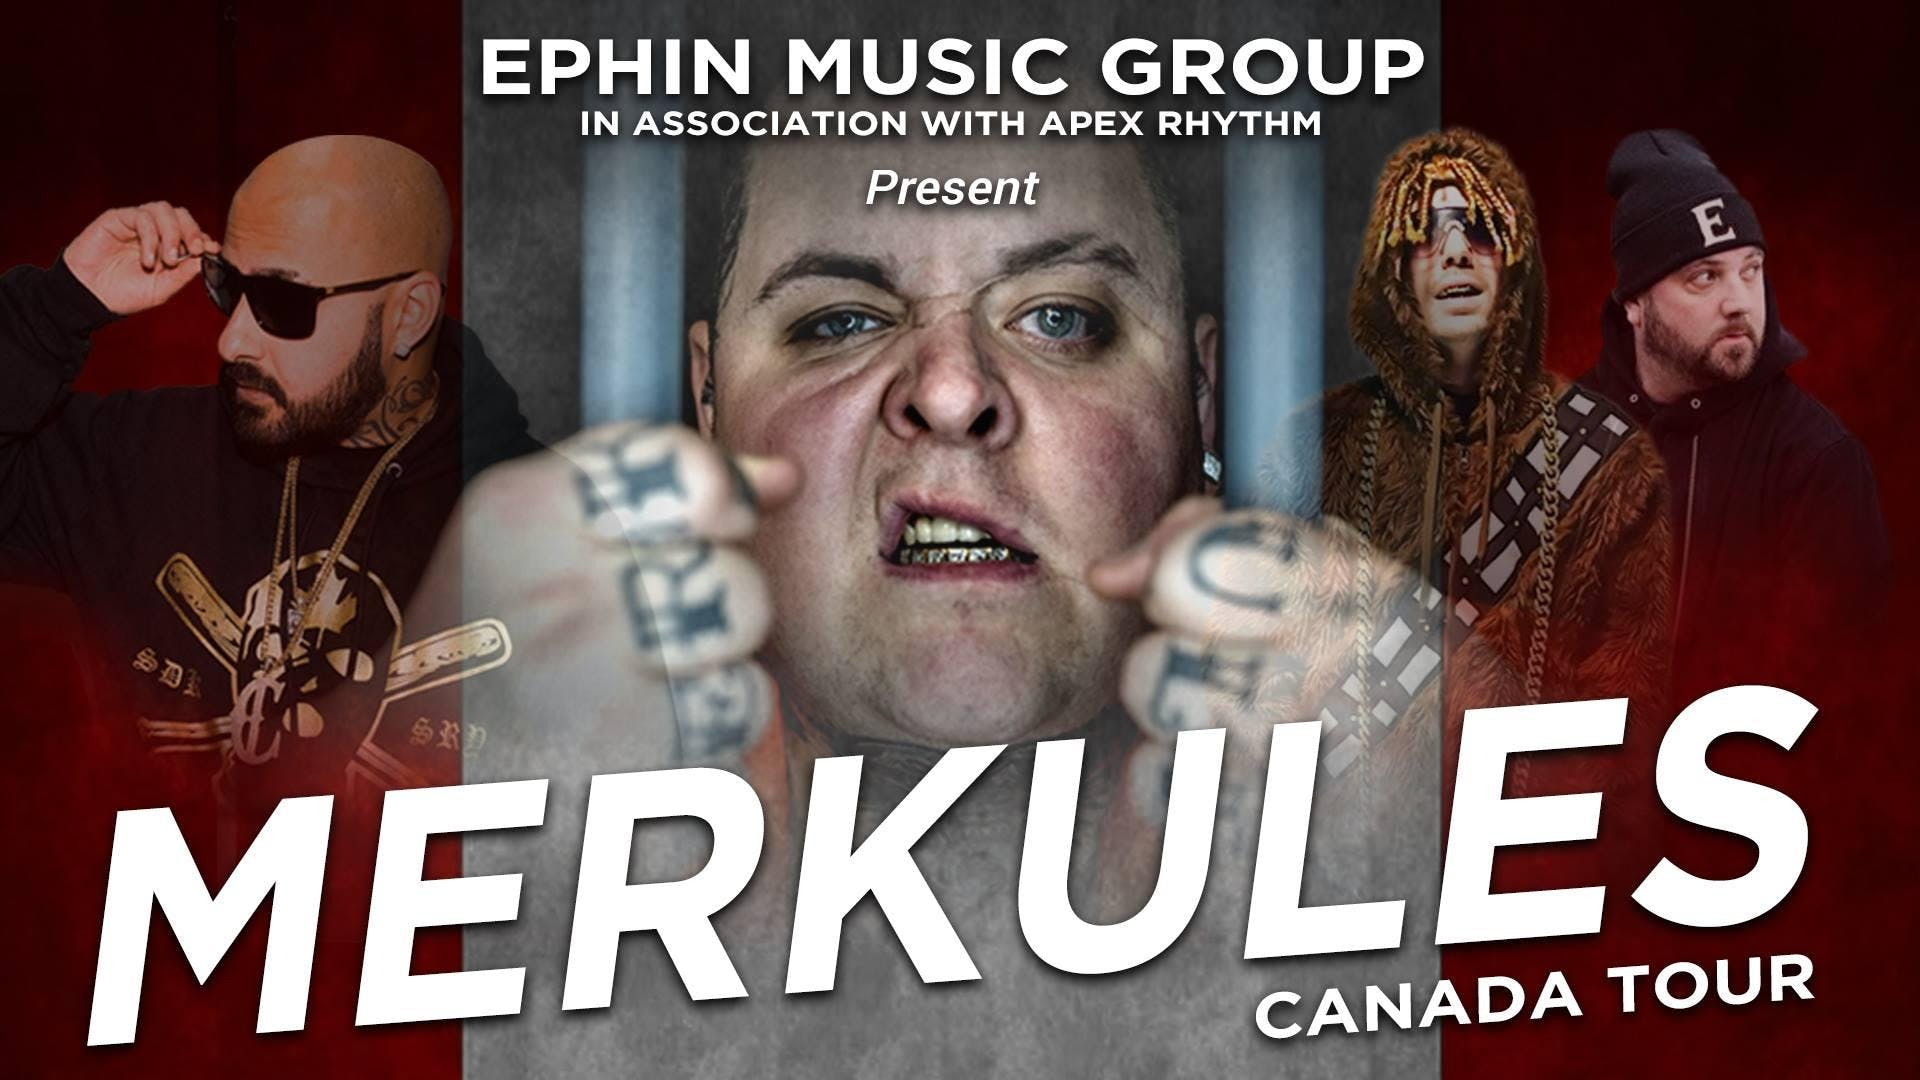 MERKULES & Special Guests Canadian Tour